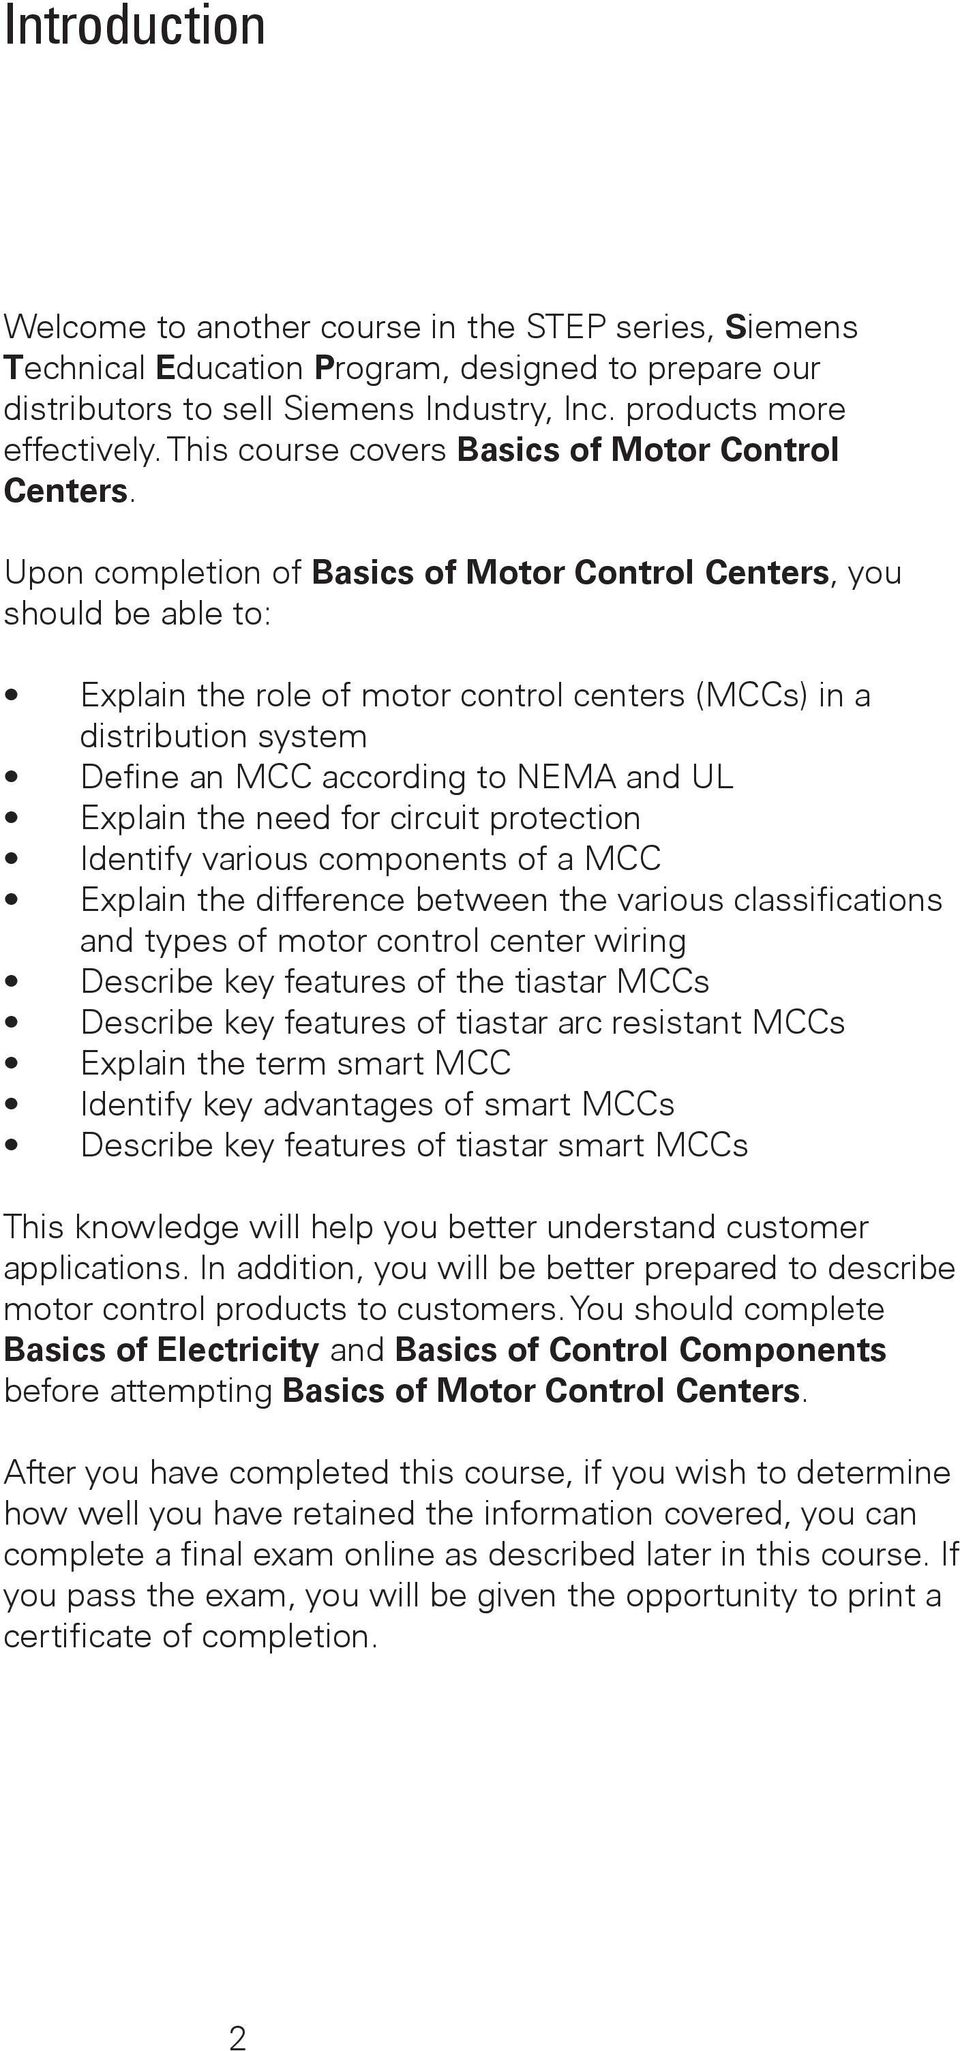 Table Of Contents Review Answers77 Final Exam Pdf Introduction To Circuit And Motor Protection 4 Upon Completion Basics Control Centers You Should Be Able Explain